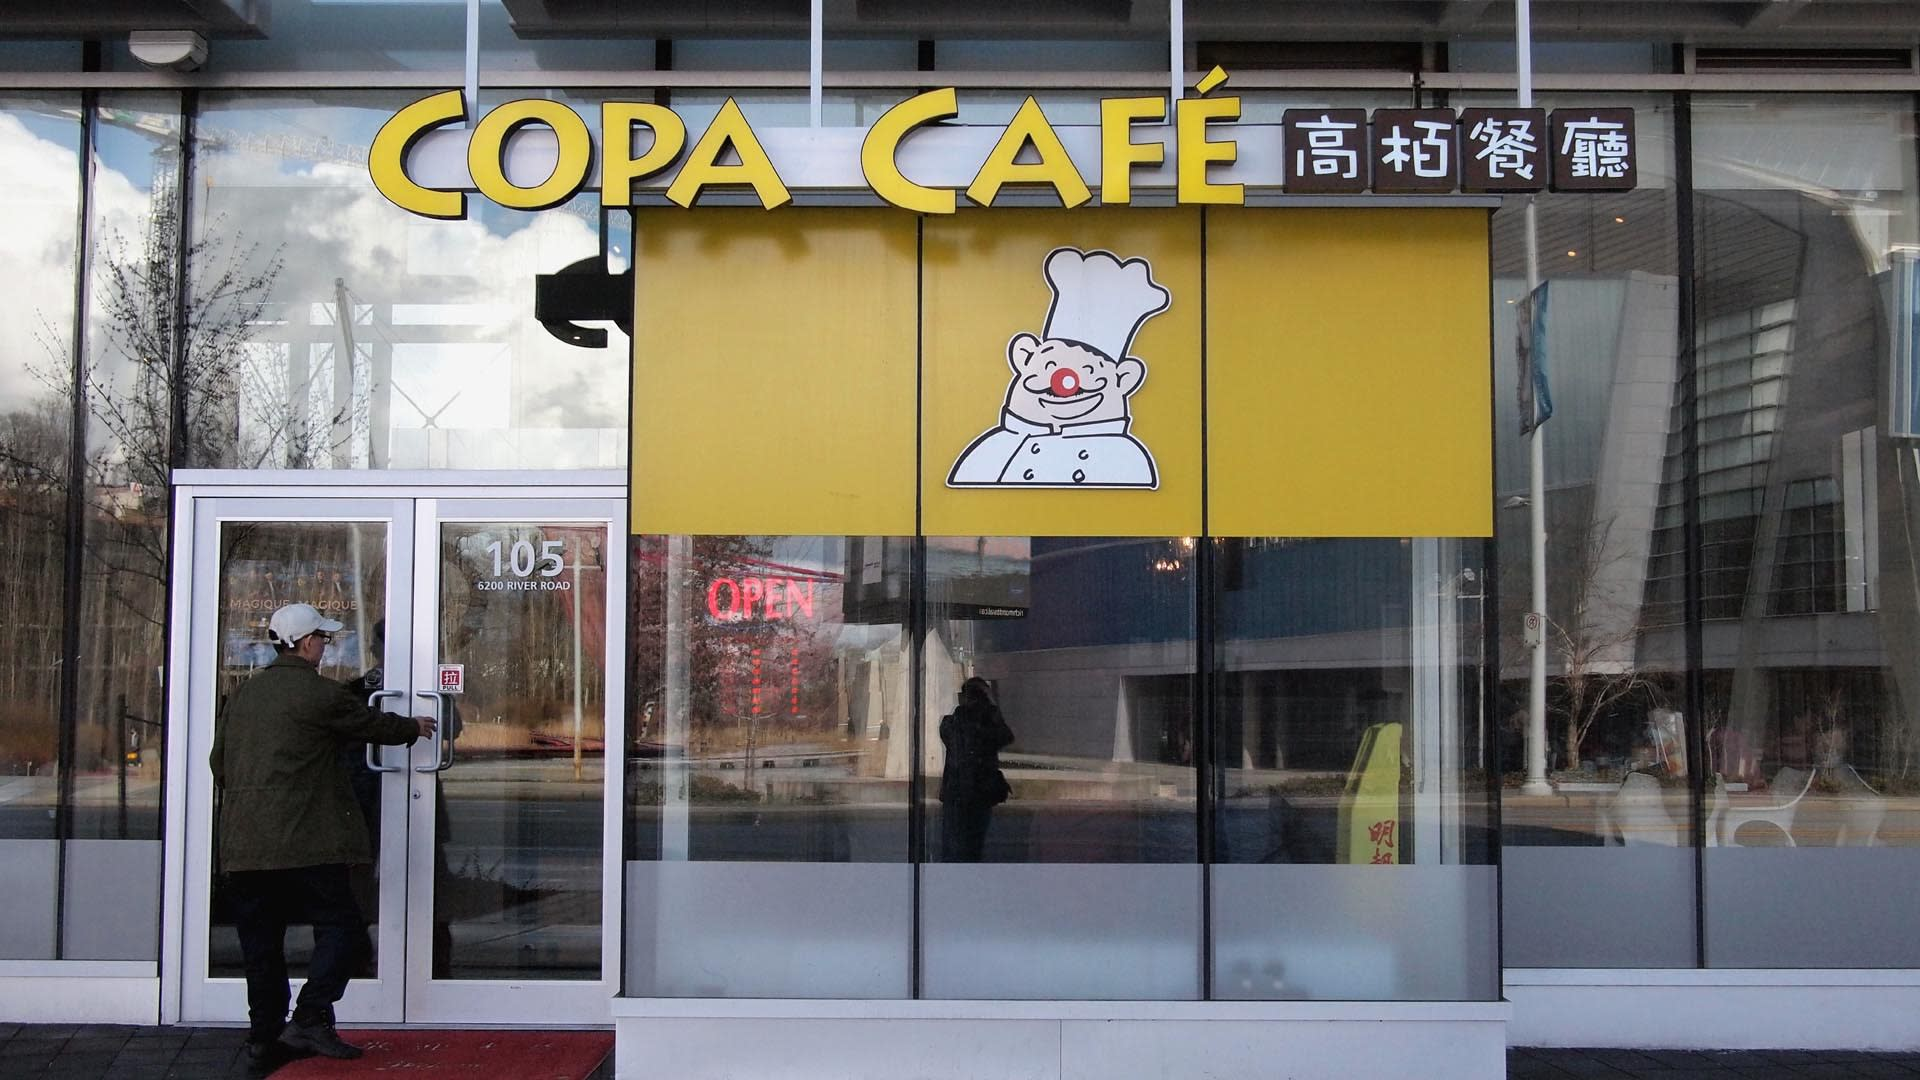 Copa Cafe